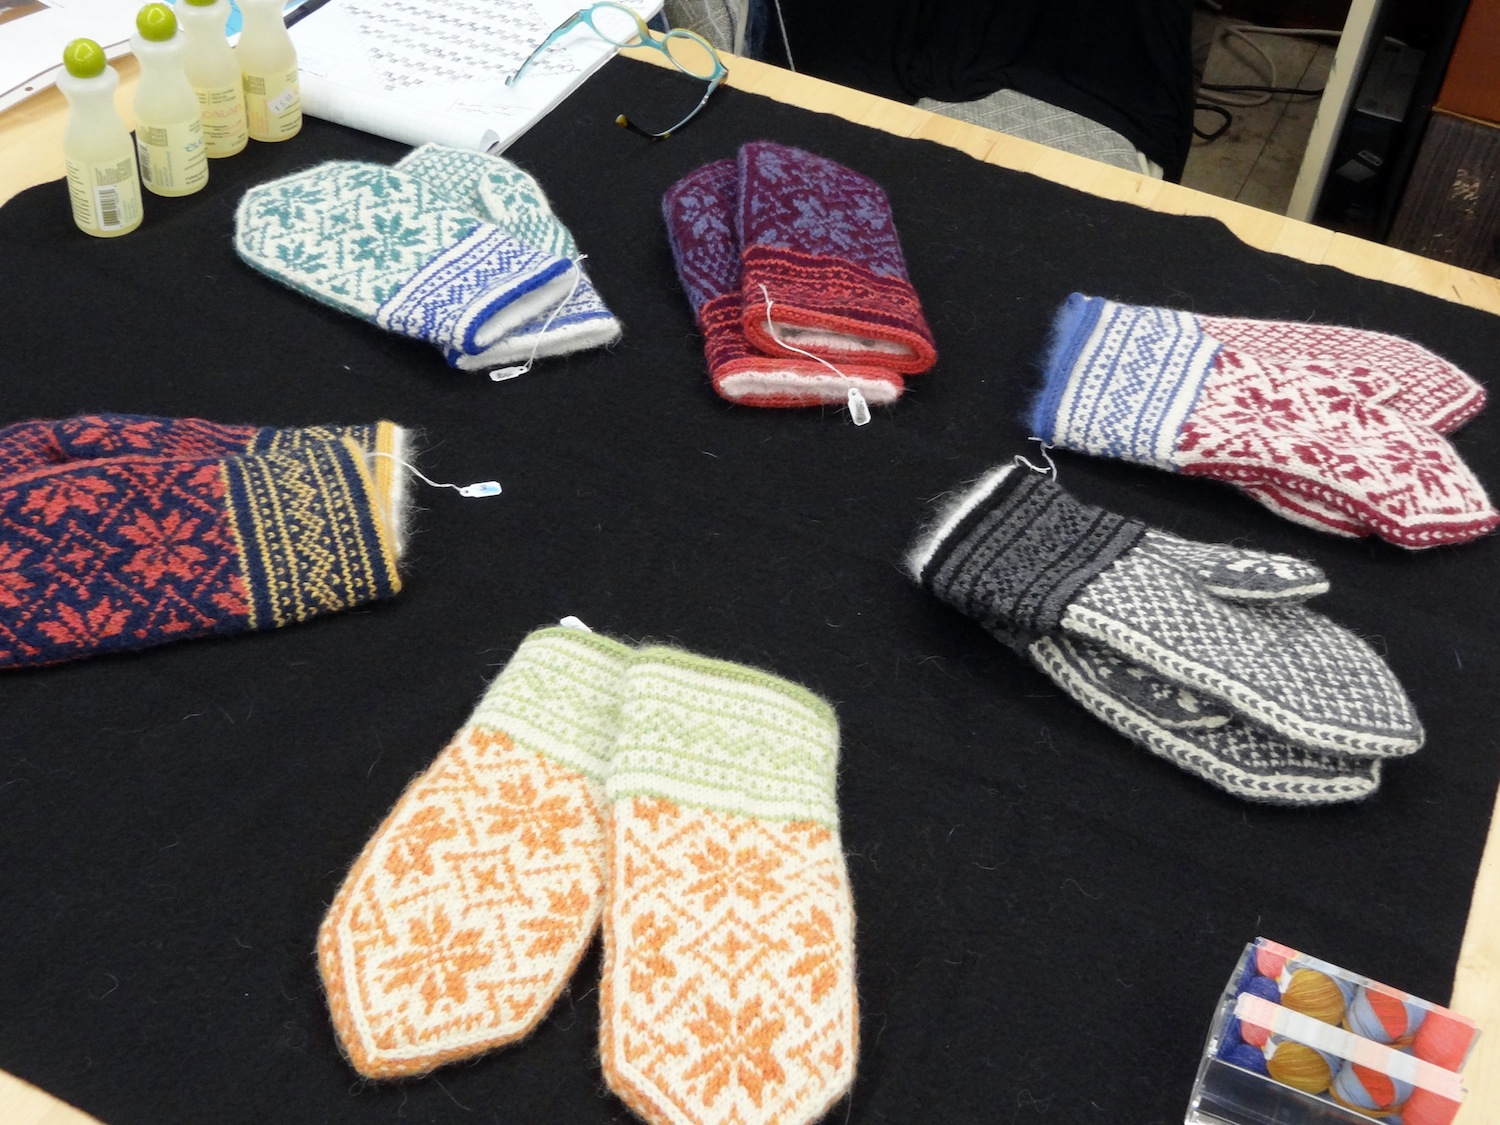 Knitted mittens by artist and knitter Dee Cohen, 2014.